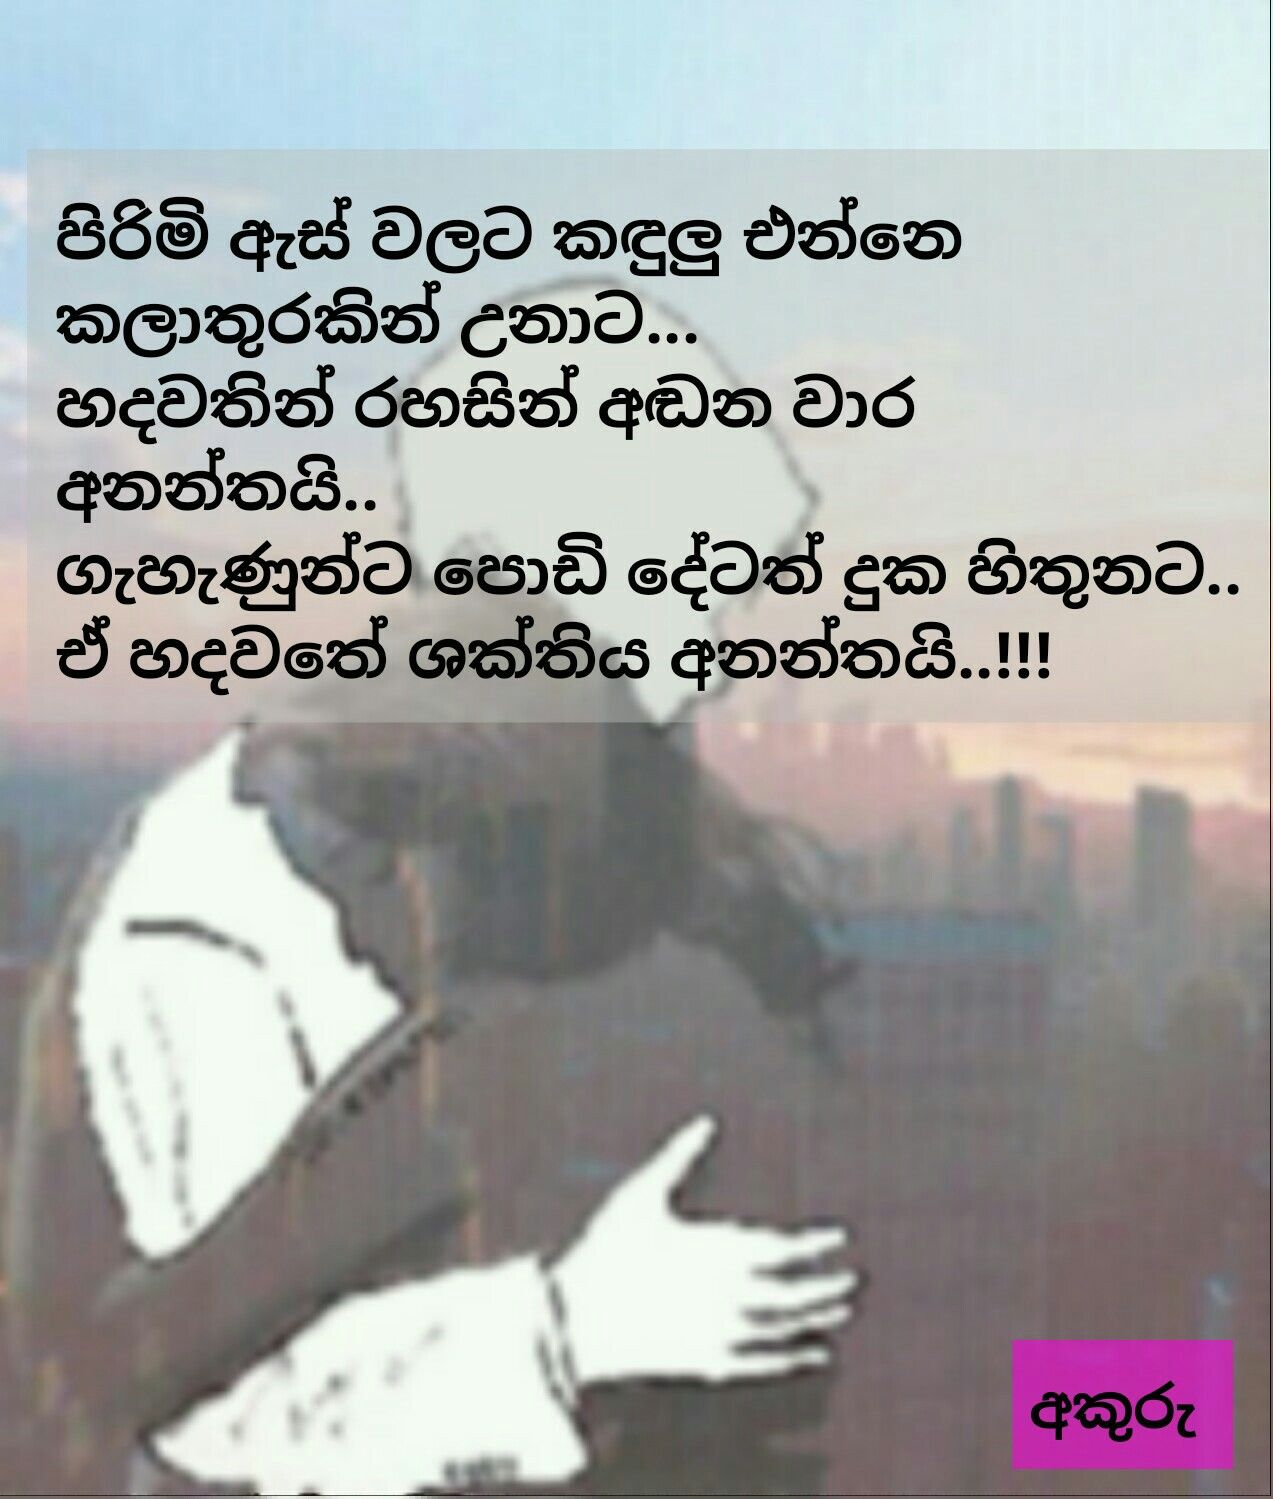 Sinhala Sinhalaquotes Love ස හල Buddhism Quote Touching Quotes Love Quotes